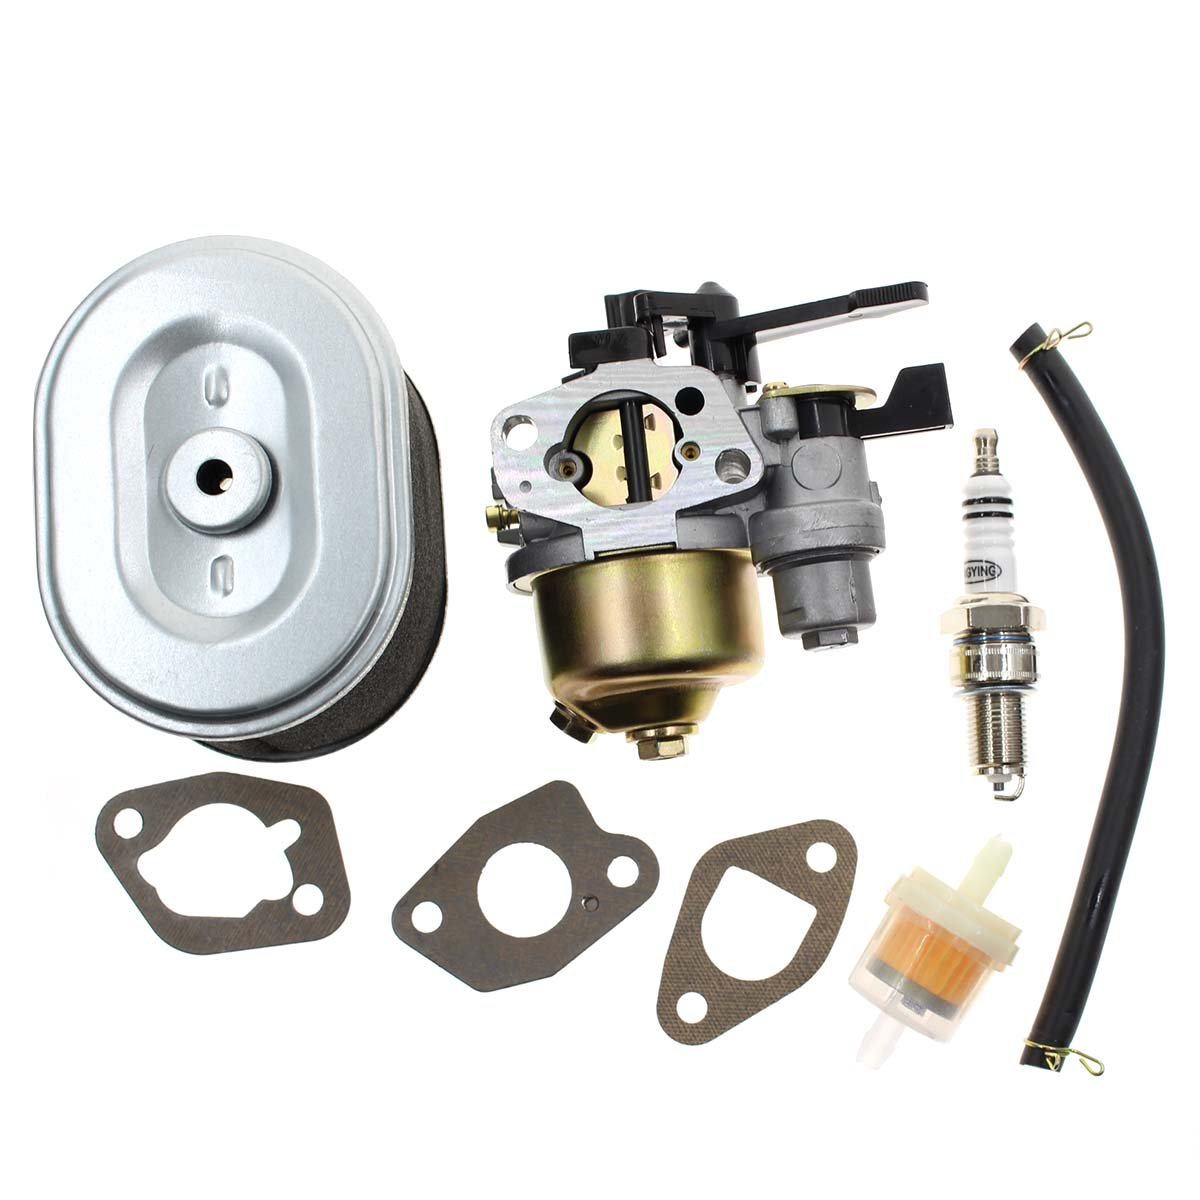 Carburetor for Honda GX160 5.5HP GX200 6.5 HP Engine Harbor Freight Predator 212cc Homelite Pressure Washer 179CC 180cc DJ165F 2700PSI 2.3GPM UT80522D with Air Filter Spark Plug Fuel Filter